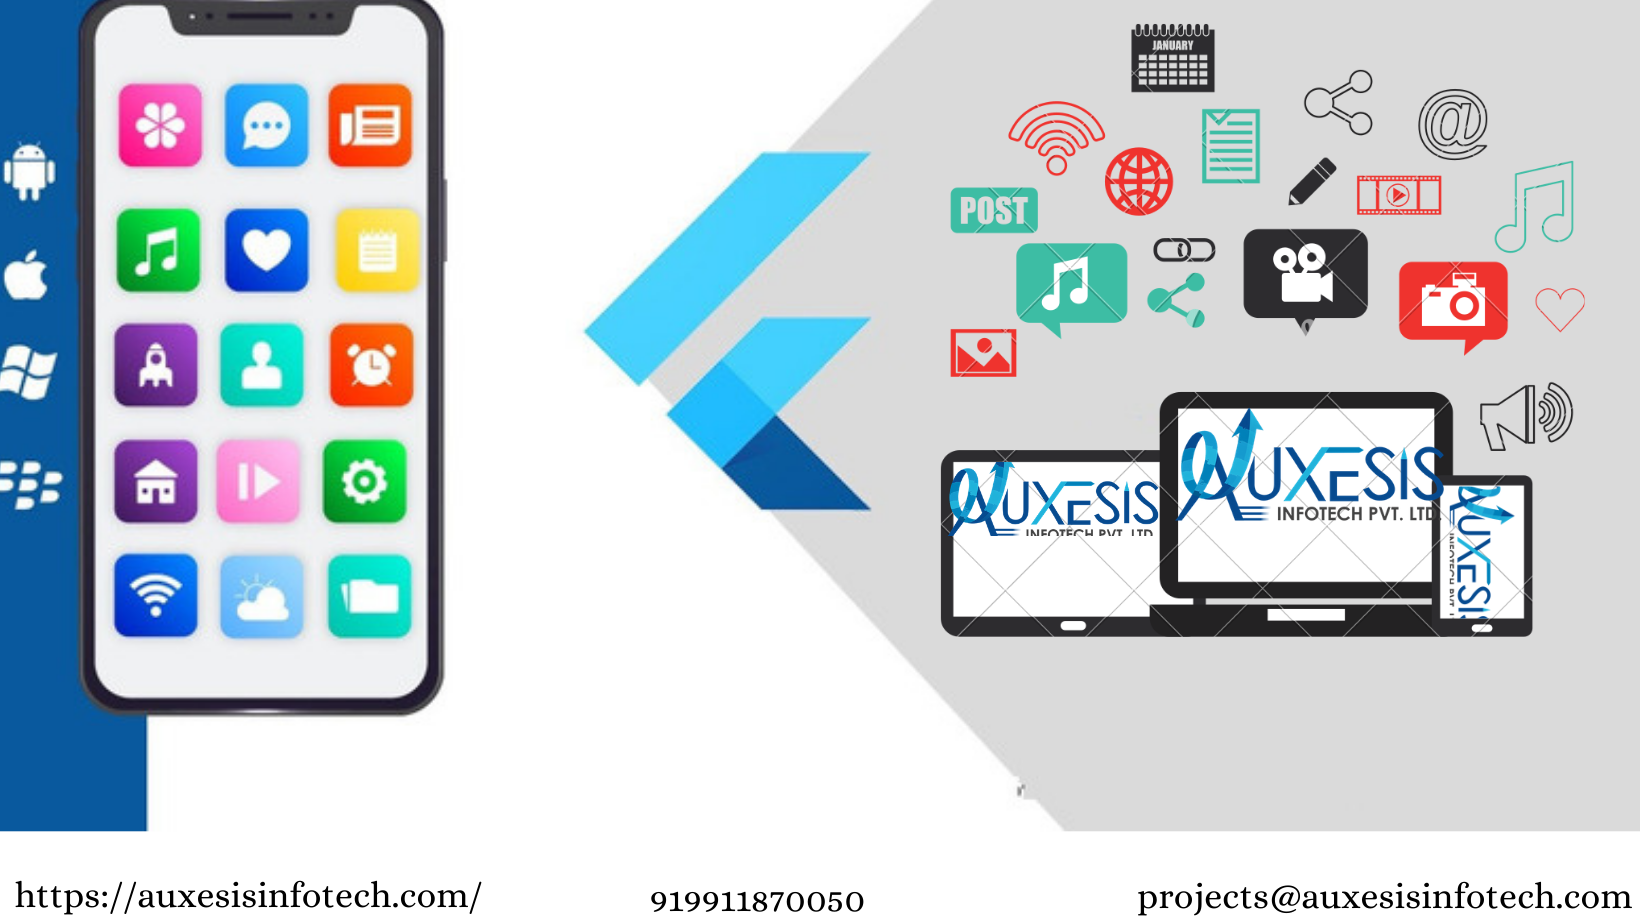 Make a Successful Mobile App For Your Business With Best Specialists at Auxesis Infotech - Press Release